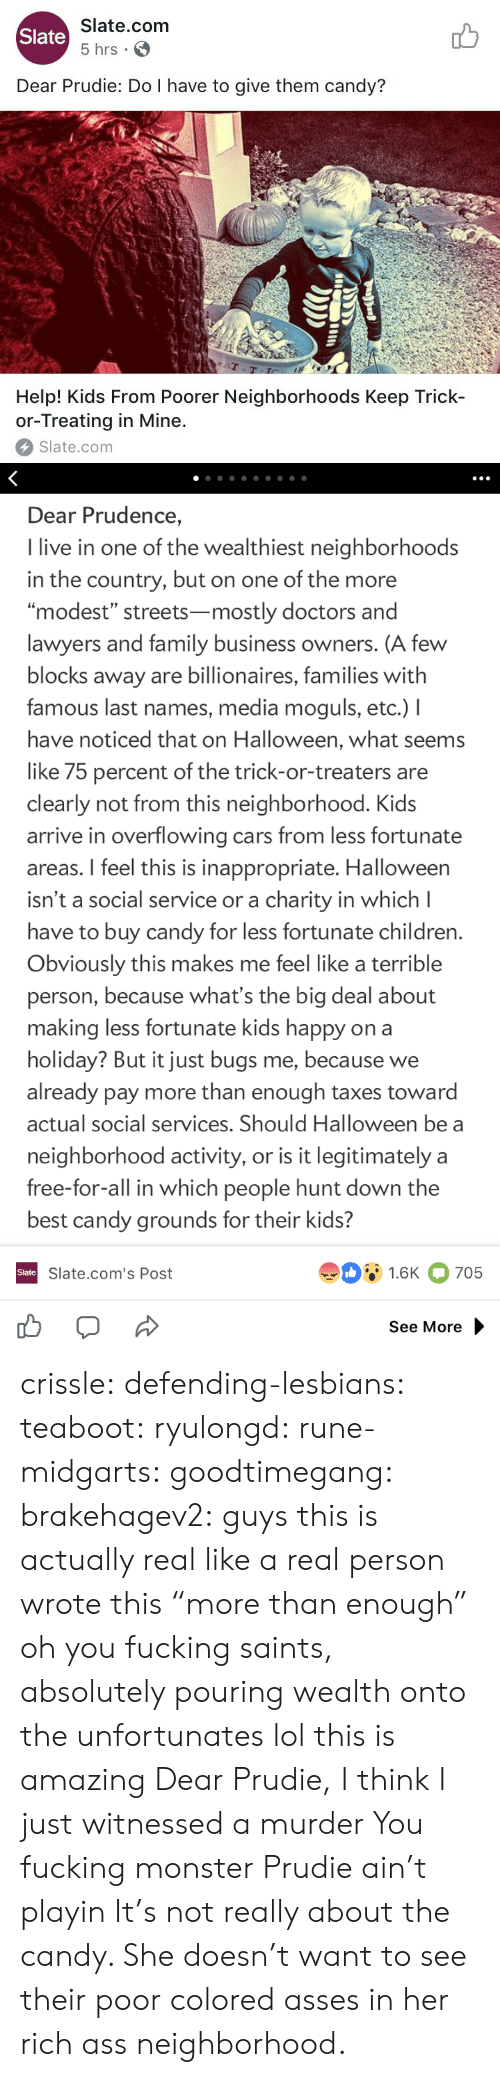 """Ass, Candy, and Cars: Slate.com  5 hrs .  Slate  Dear Prudie: Do I have to give them candy?  aT  T-T  Help! Kids From Poorer Neighborhoods Keep Trick-  or-Treating in Mine.  Slate.com   Dear Prudence,  I live in one of the wealthiest neighborhoods  in the country, but on one of the more  """"modest"""" streets-mostly doctors and  lawyers and family business owners. (A few  blocks away are billionaires, families with  famous last names, media moguls, etc.) I  have noticed that on Halloween, what seems  like 75 percent of the trick-or-treaters are  clearly not from this neighborhood. Kids  arrive in overflowing cars from less fortunate  areas. I feel this is inappropriate. Halloween  isn't a social service or a charity in which l  have to buy candy for less fortunate children  Obviously this makes me feel like a terrible  person, because what's the big deal about  making less fortunate kids happy on a  holiday? But it just bugs me, because we  already pay more than enough taxes toward  actual social services. Should Halloween be a  neighborhood activity, or is it legitimately a  free-for-all in which people hunt down the  best candy grounds for their kids?  91.6K 705  Slate  Slate.com's Post  See More crissle:  defending-lesbians:  teaboot:  ryulongd:  rune-midgarts:  goodtimegang:  brakehagev2:  guys this is actually real like a real person wrote this  """"more than enough"""" oh you fucking saints, absolutely pouring wealth onto the unfortunates   lol this is amazing   Dear Prudie, I think I just witnessed a murder  You fucking monster  Prudie ain't playin  It's not really about the candy. She doesn't want to see their poor colored asses in her rich ass neighborhood."""